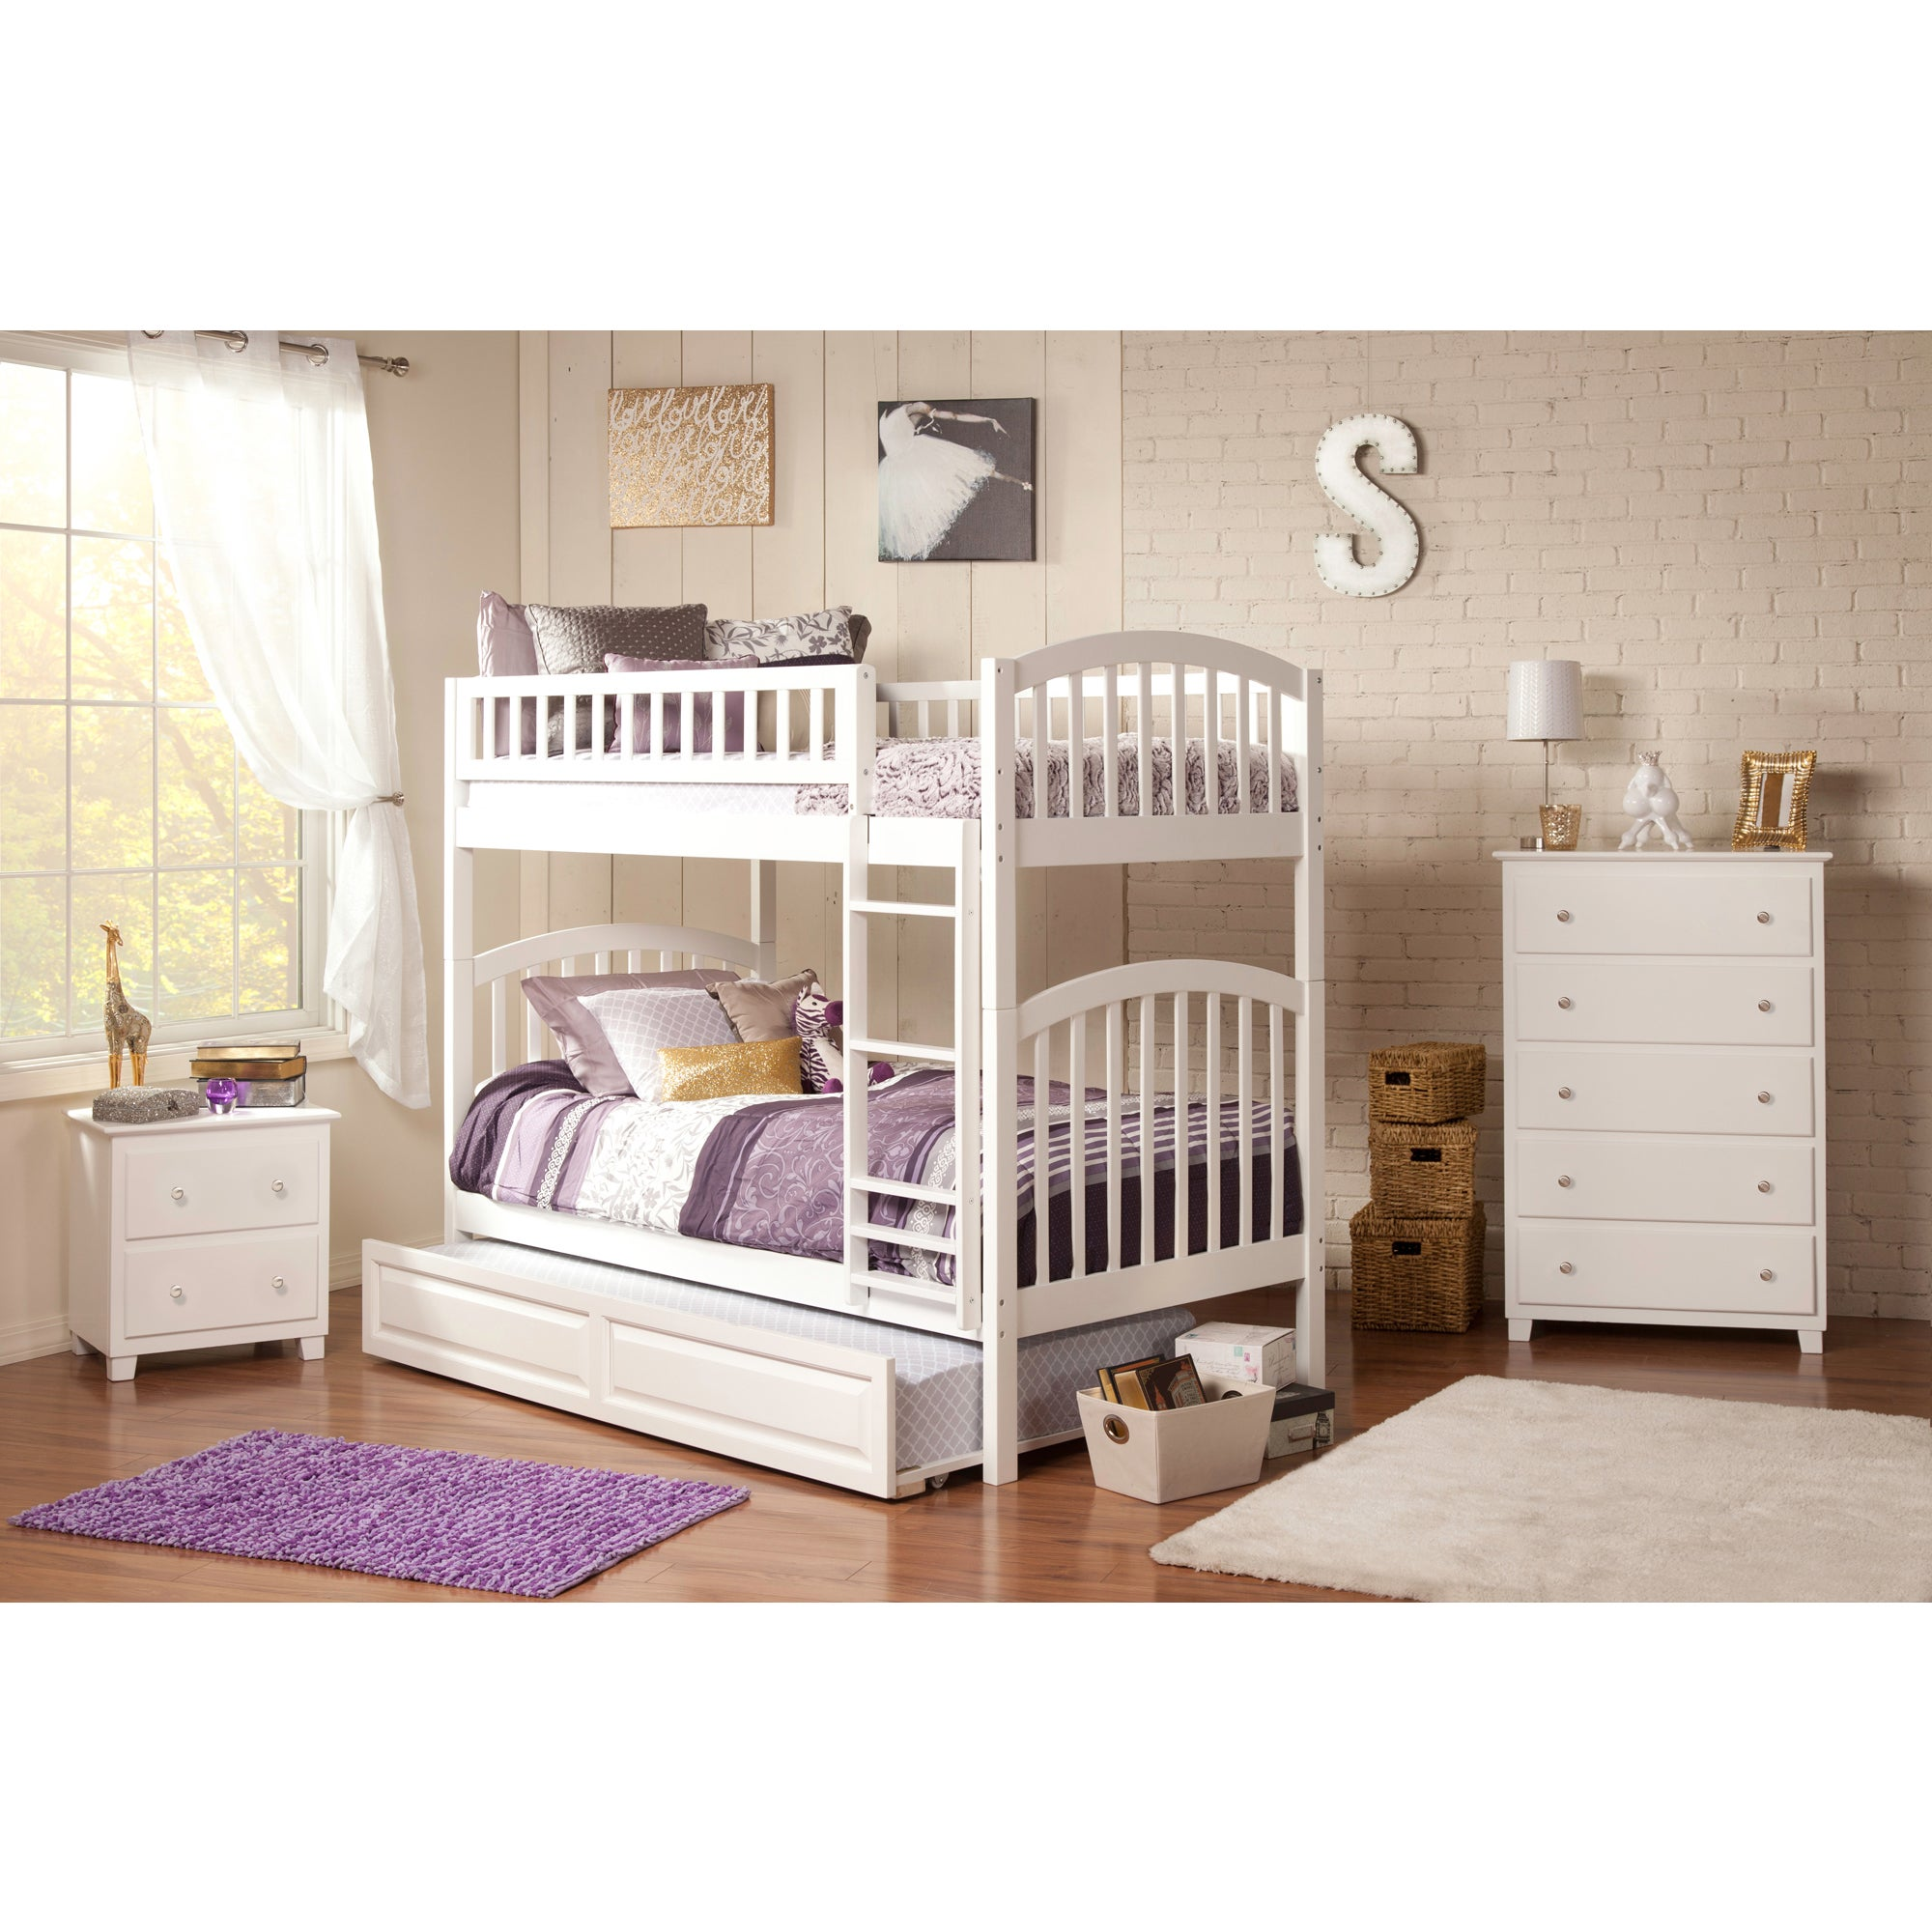 with queen for twin know best net the wood of trundle bed bedroomi cool beige designs design kids brown